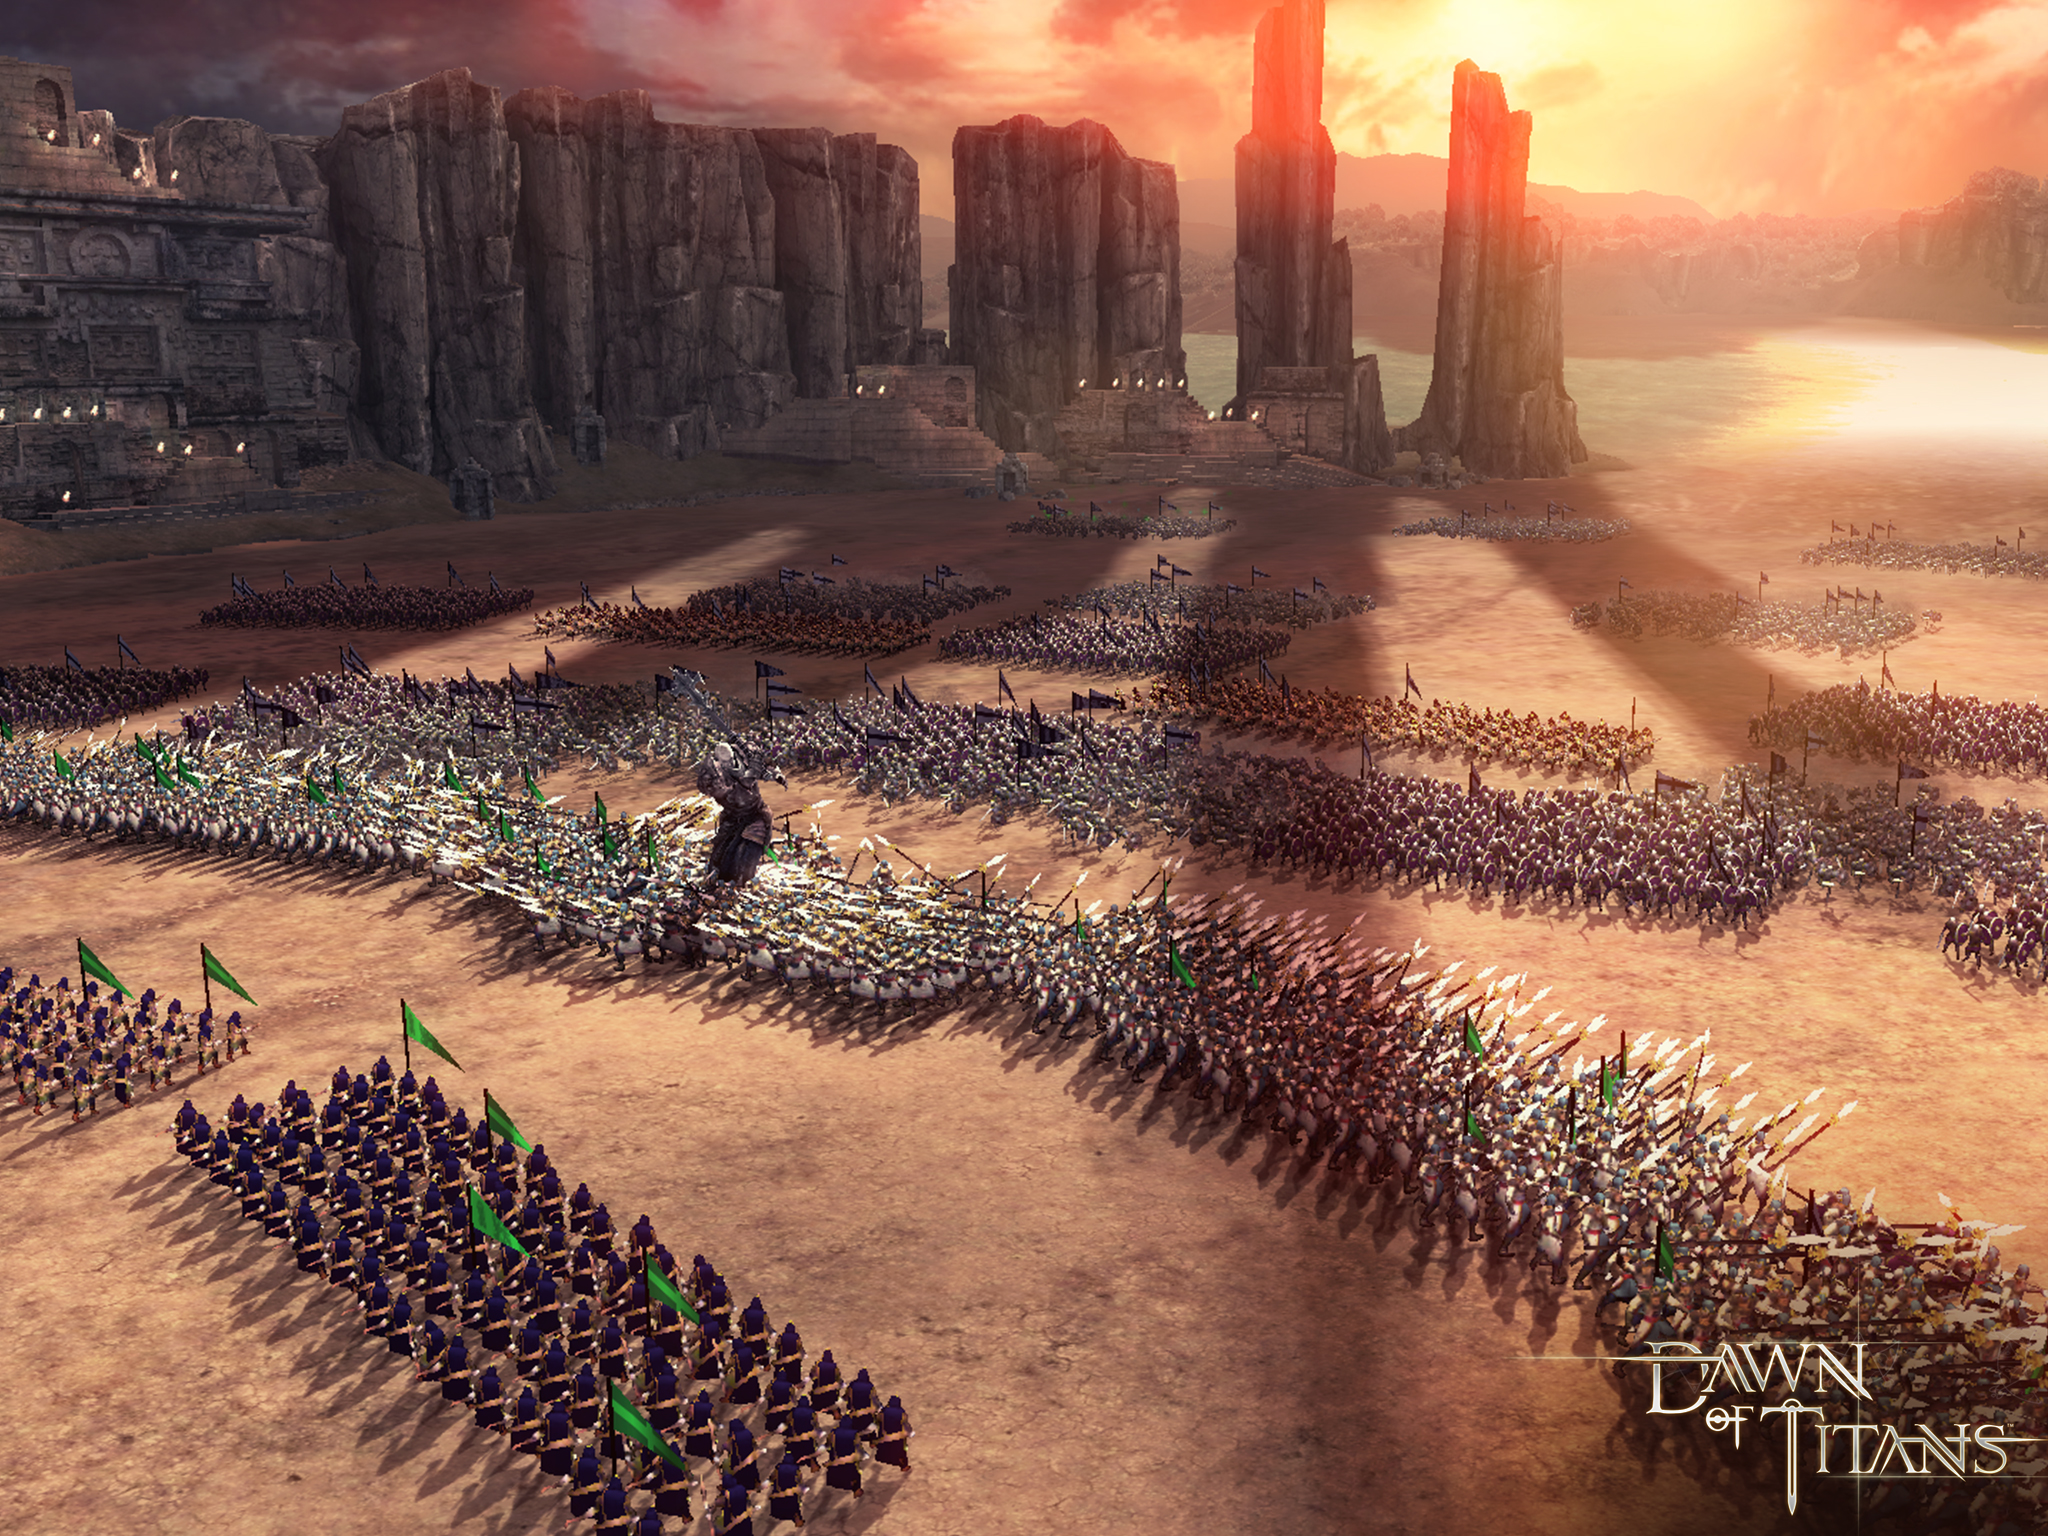 Dawn-of-titans_battle-scene